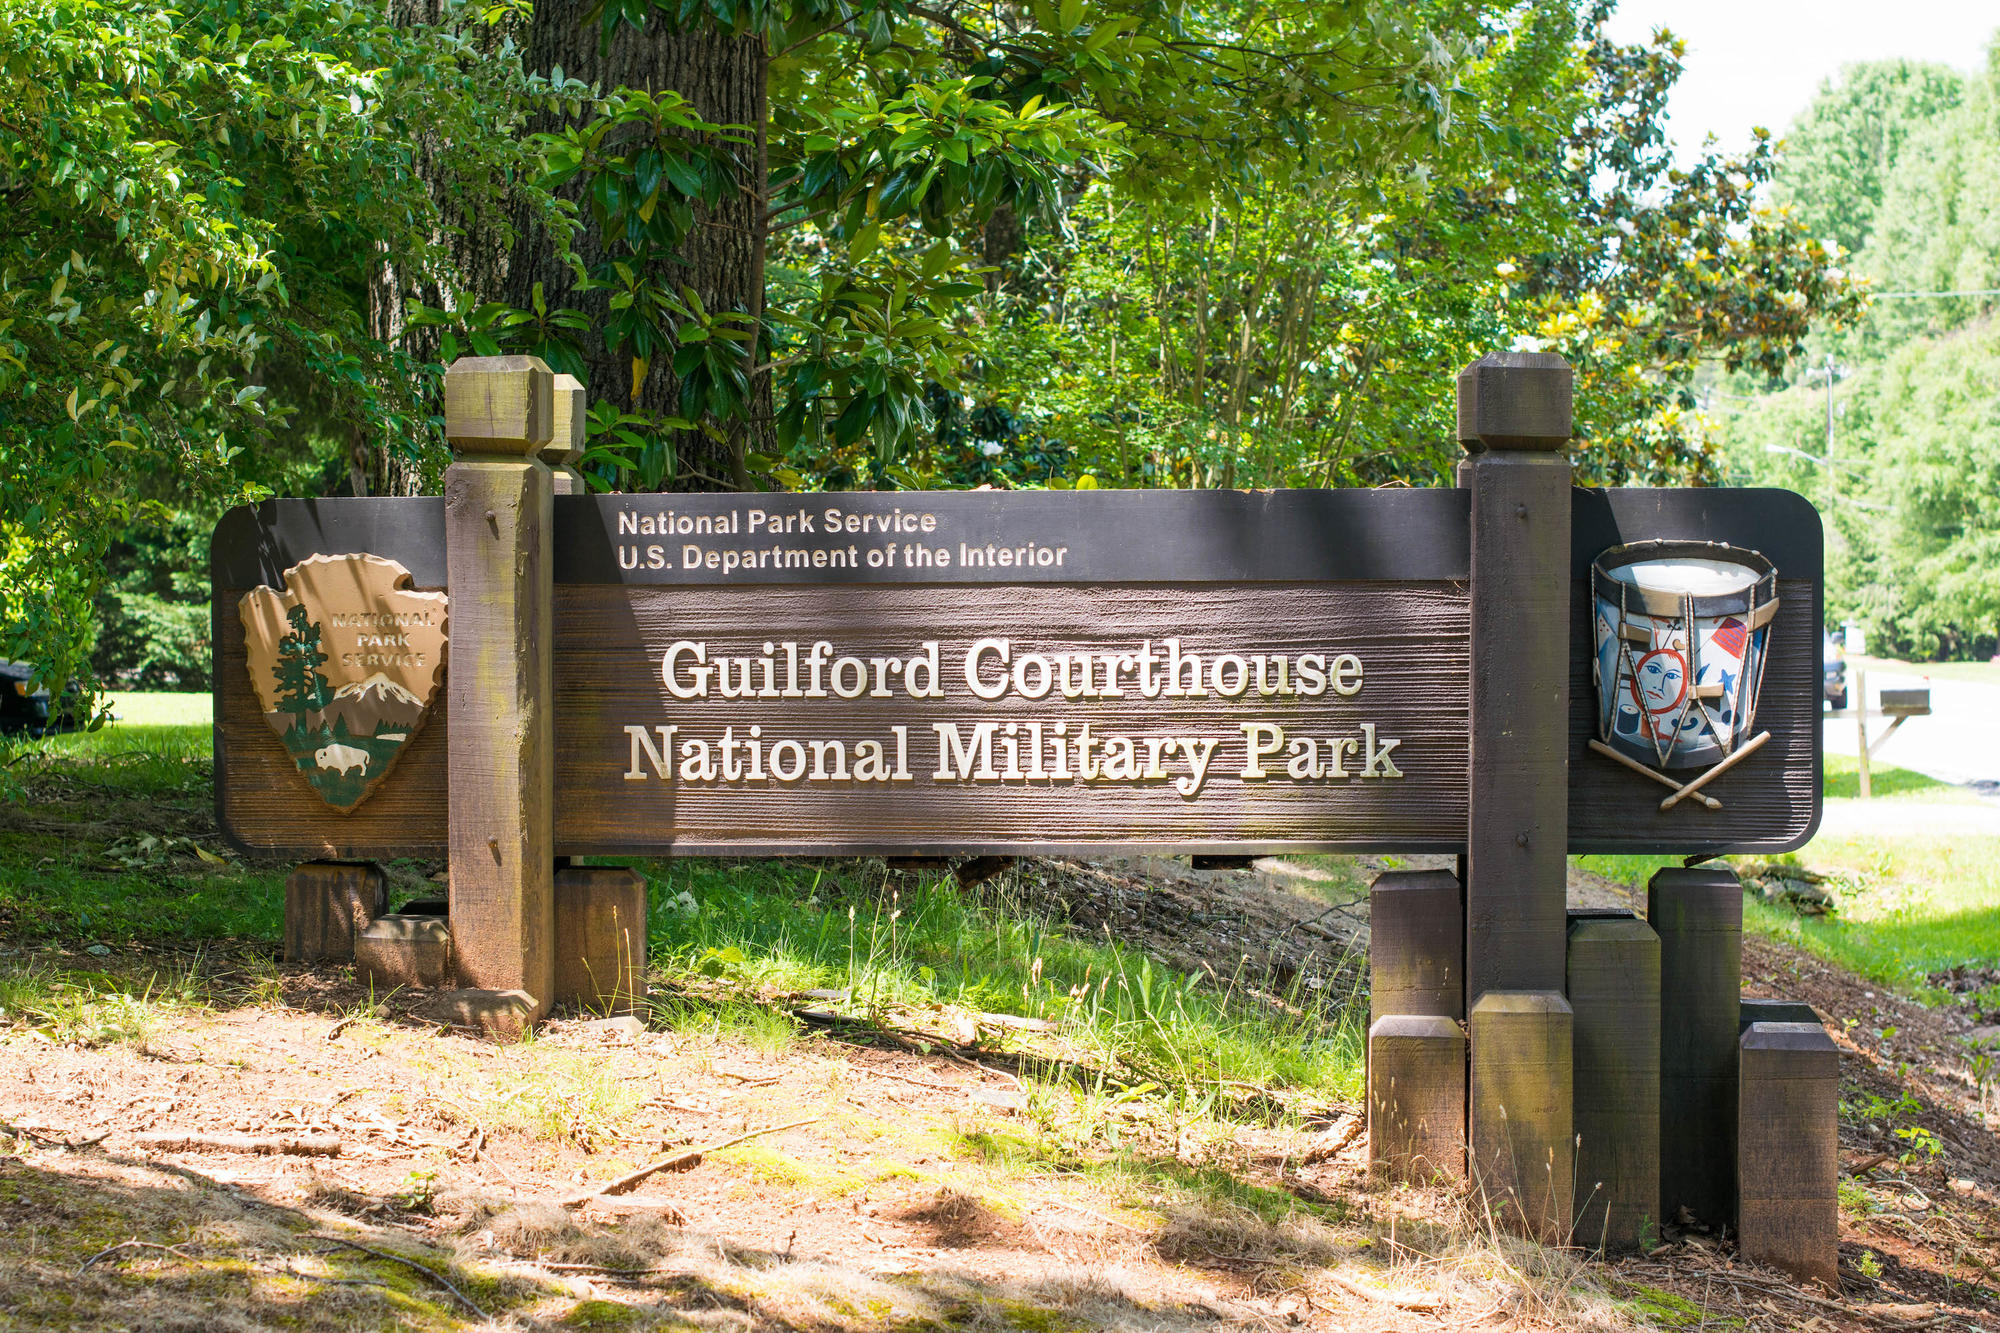 Guilford Courthouse NMP